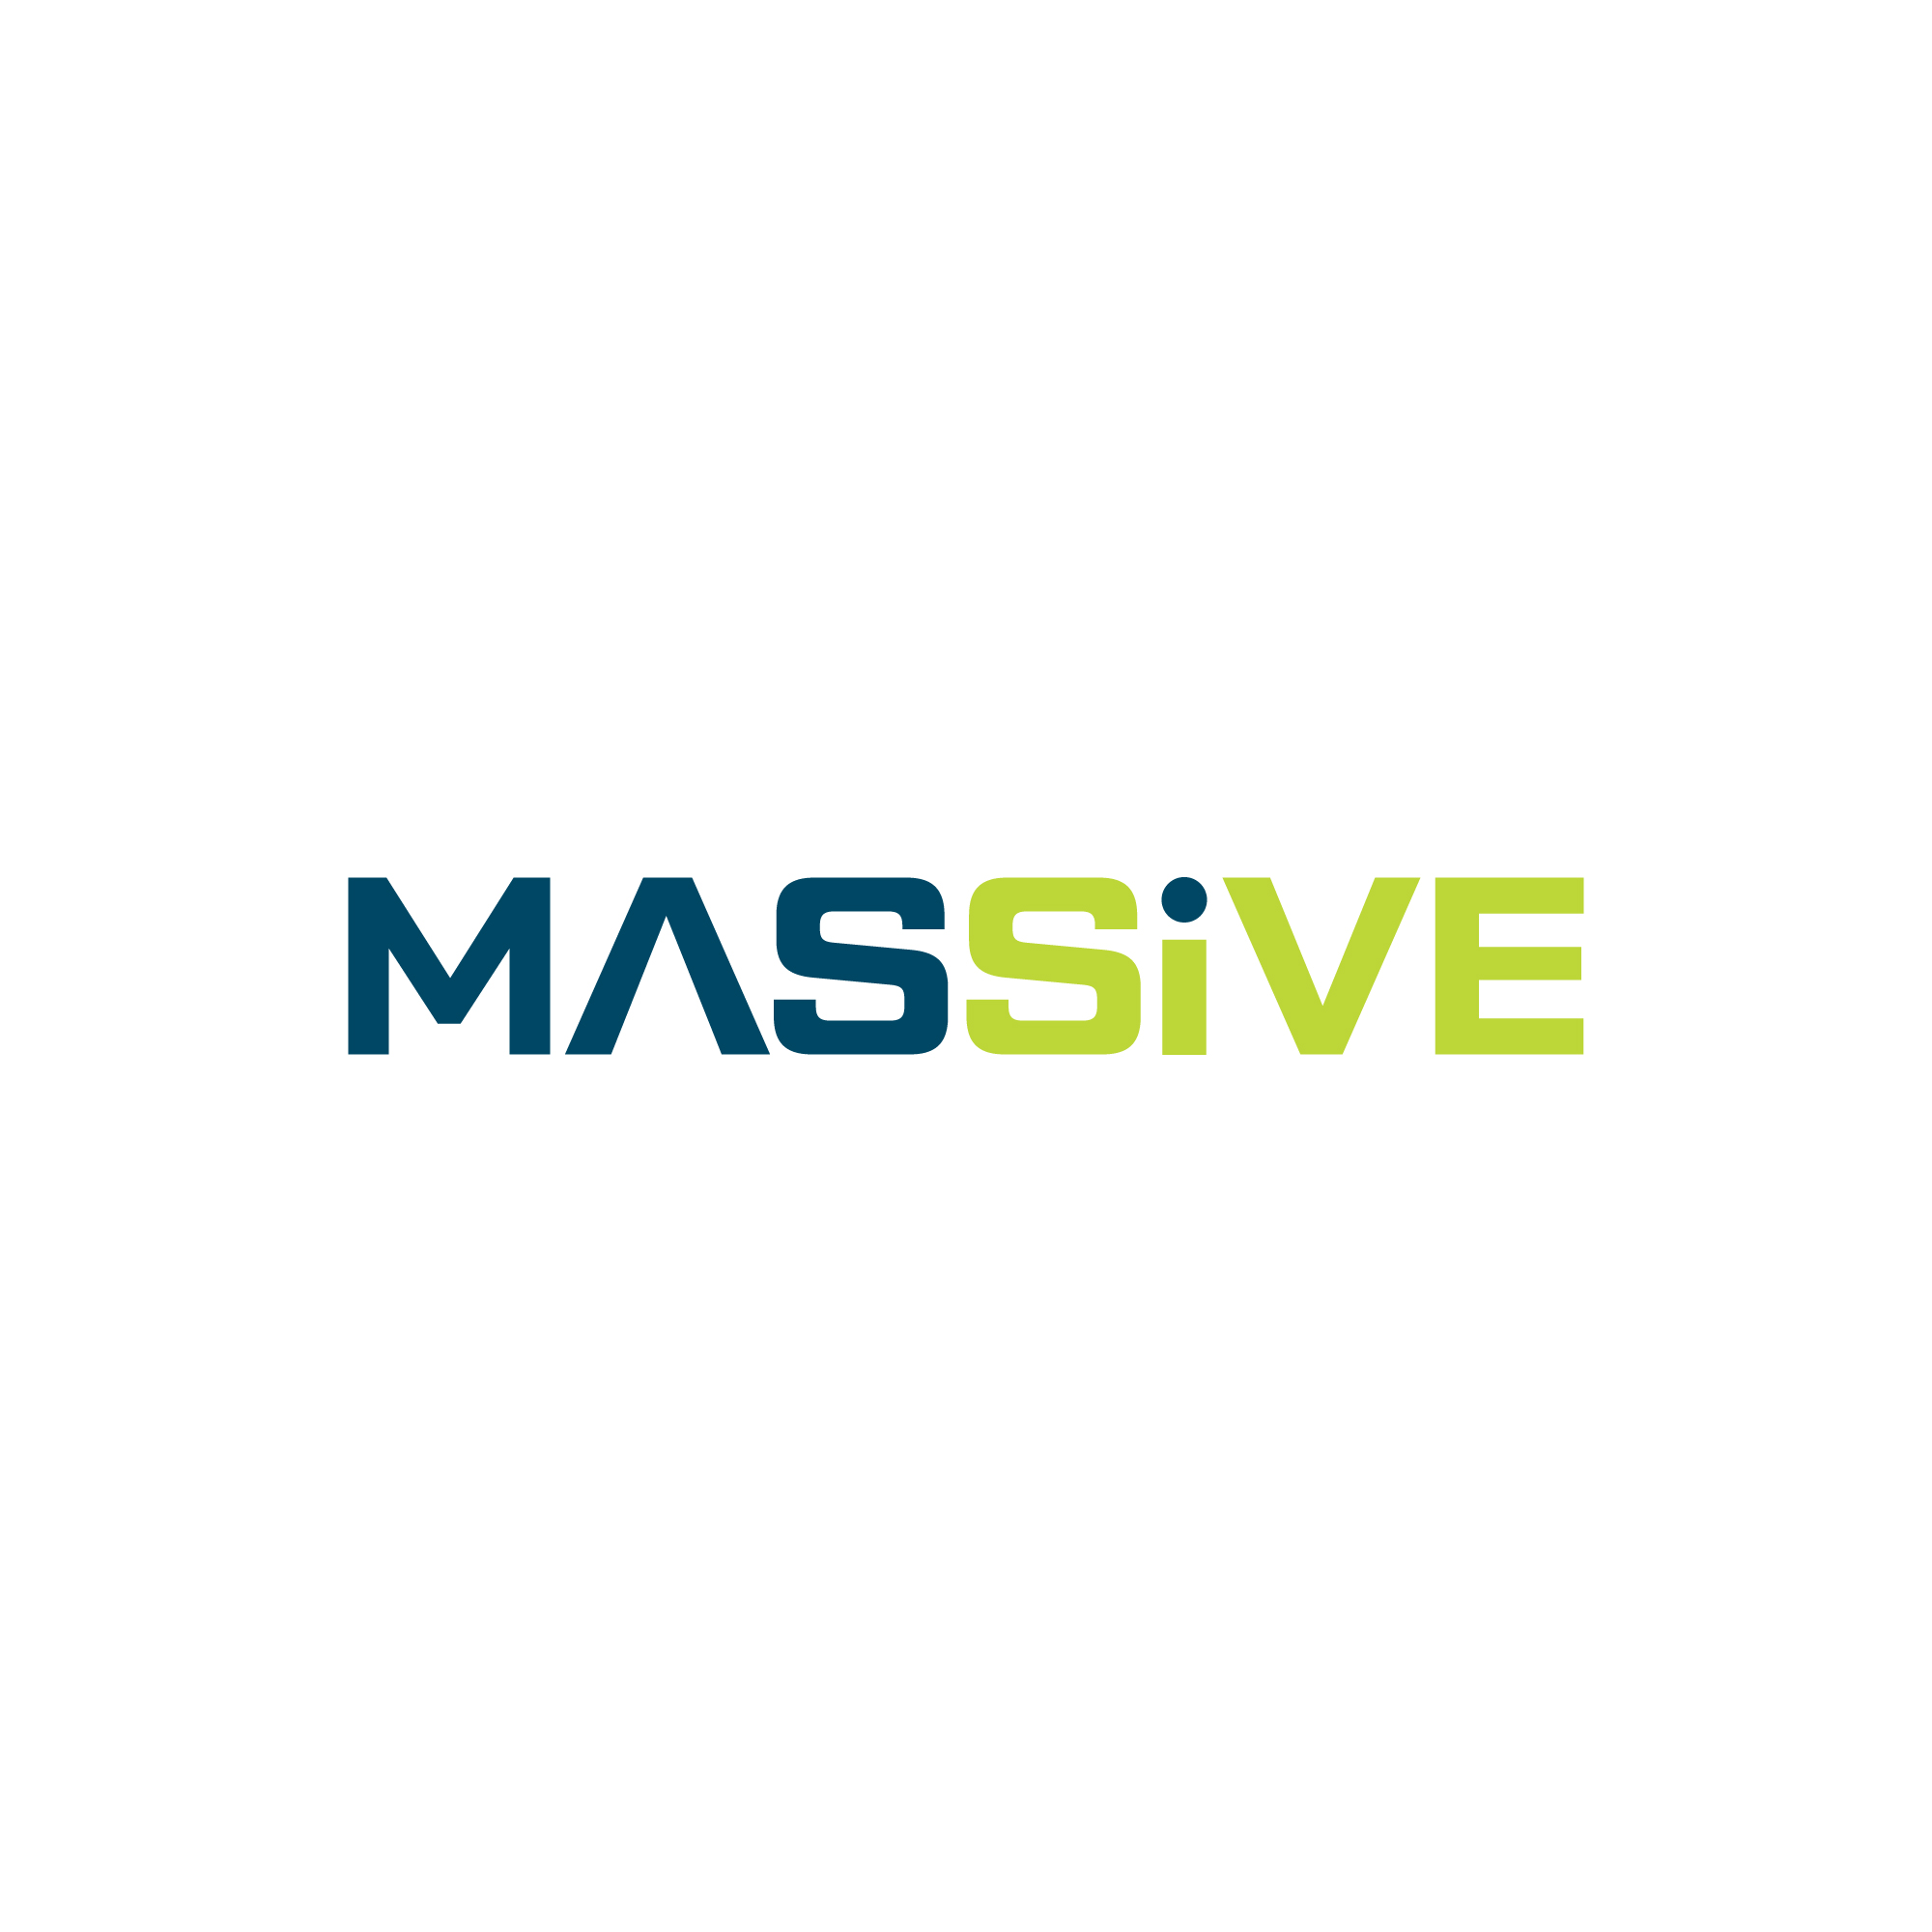 Logo Design by Zoran Lesevic - Entry No. 412 in the Logo Design Contest MASSIVE LOGO.